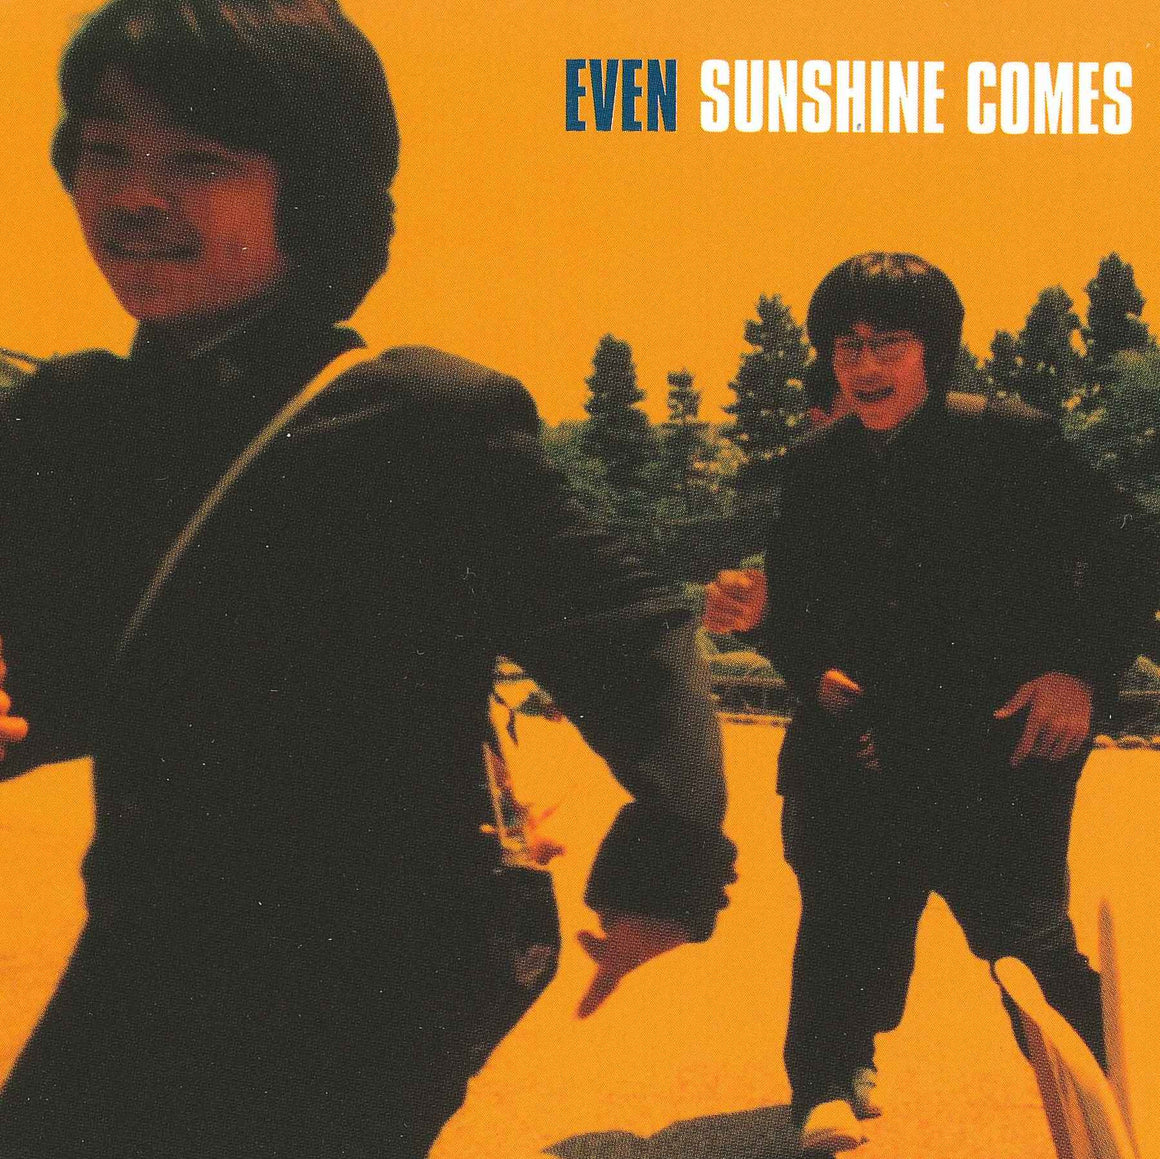 Even - Sunshine Comes